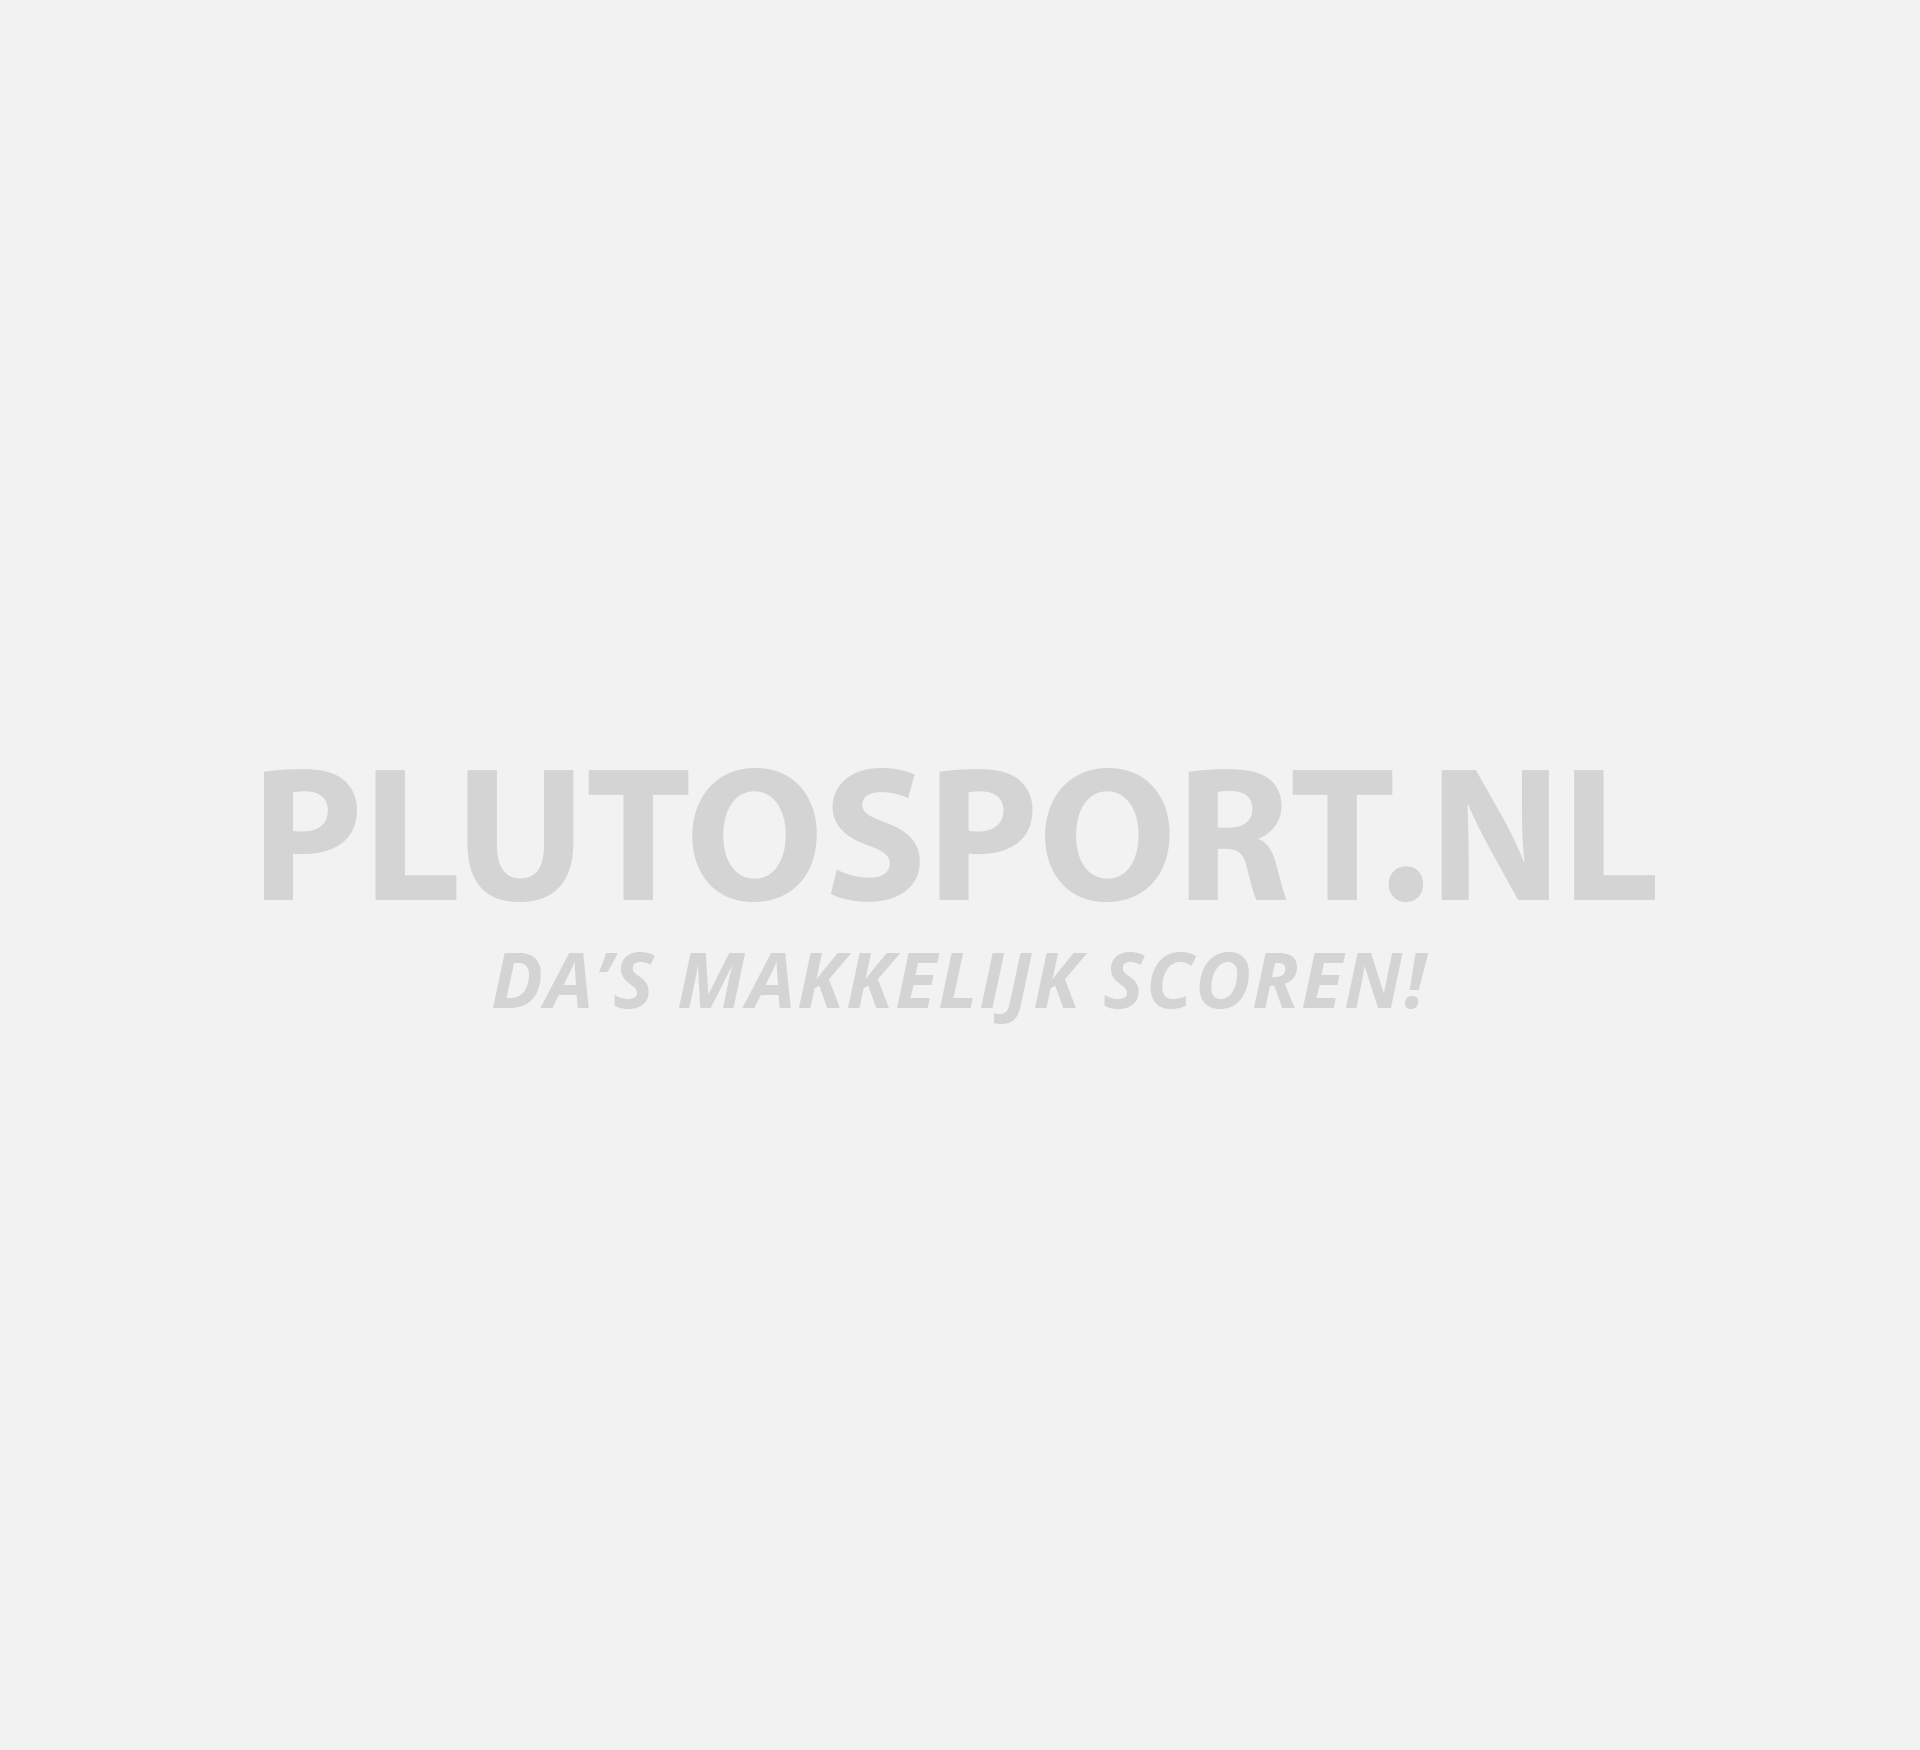 grundig hd action cam 720p